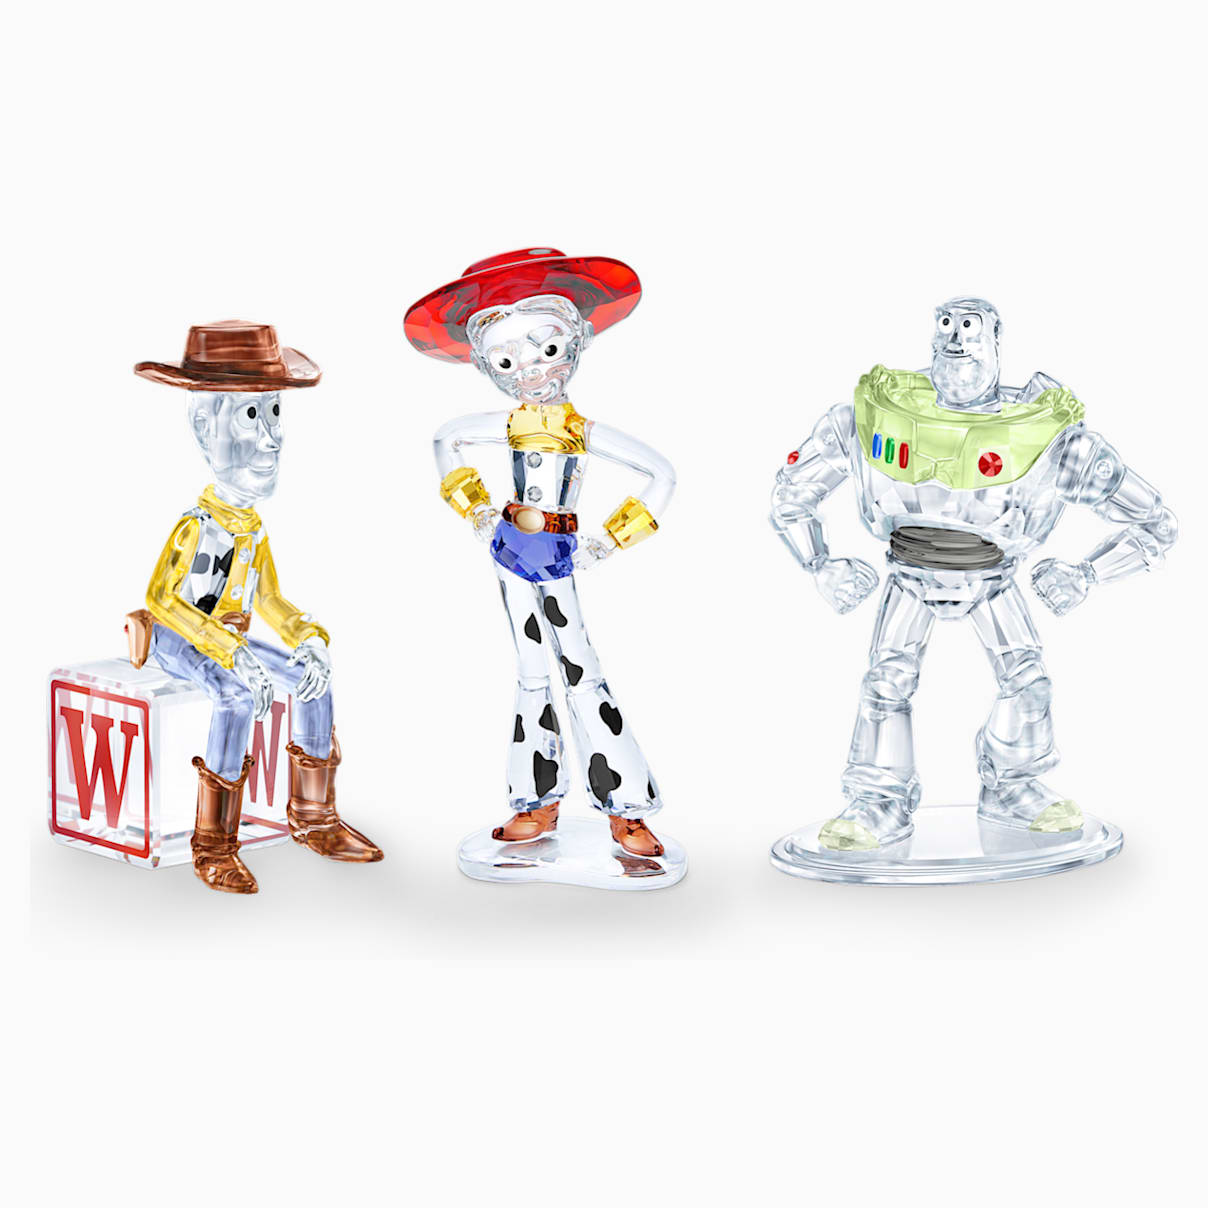 Toy Story Online Set #1